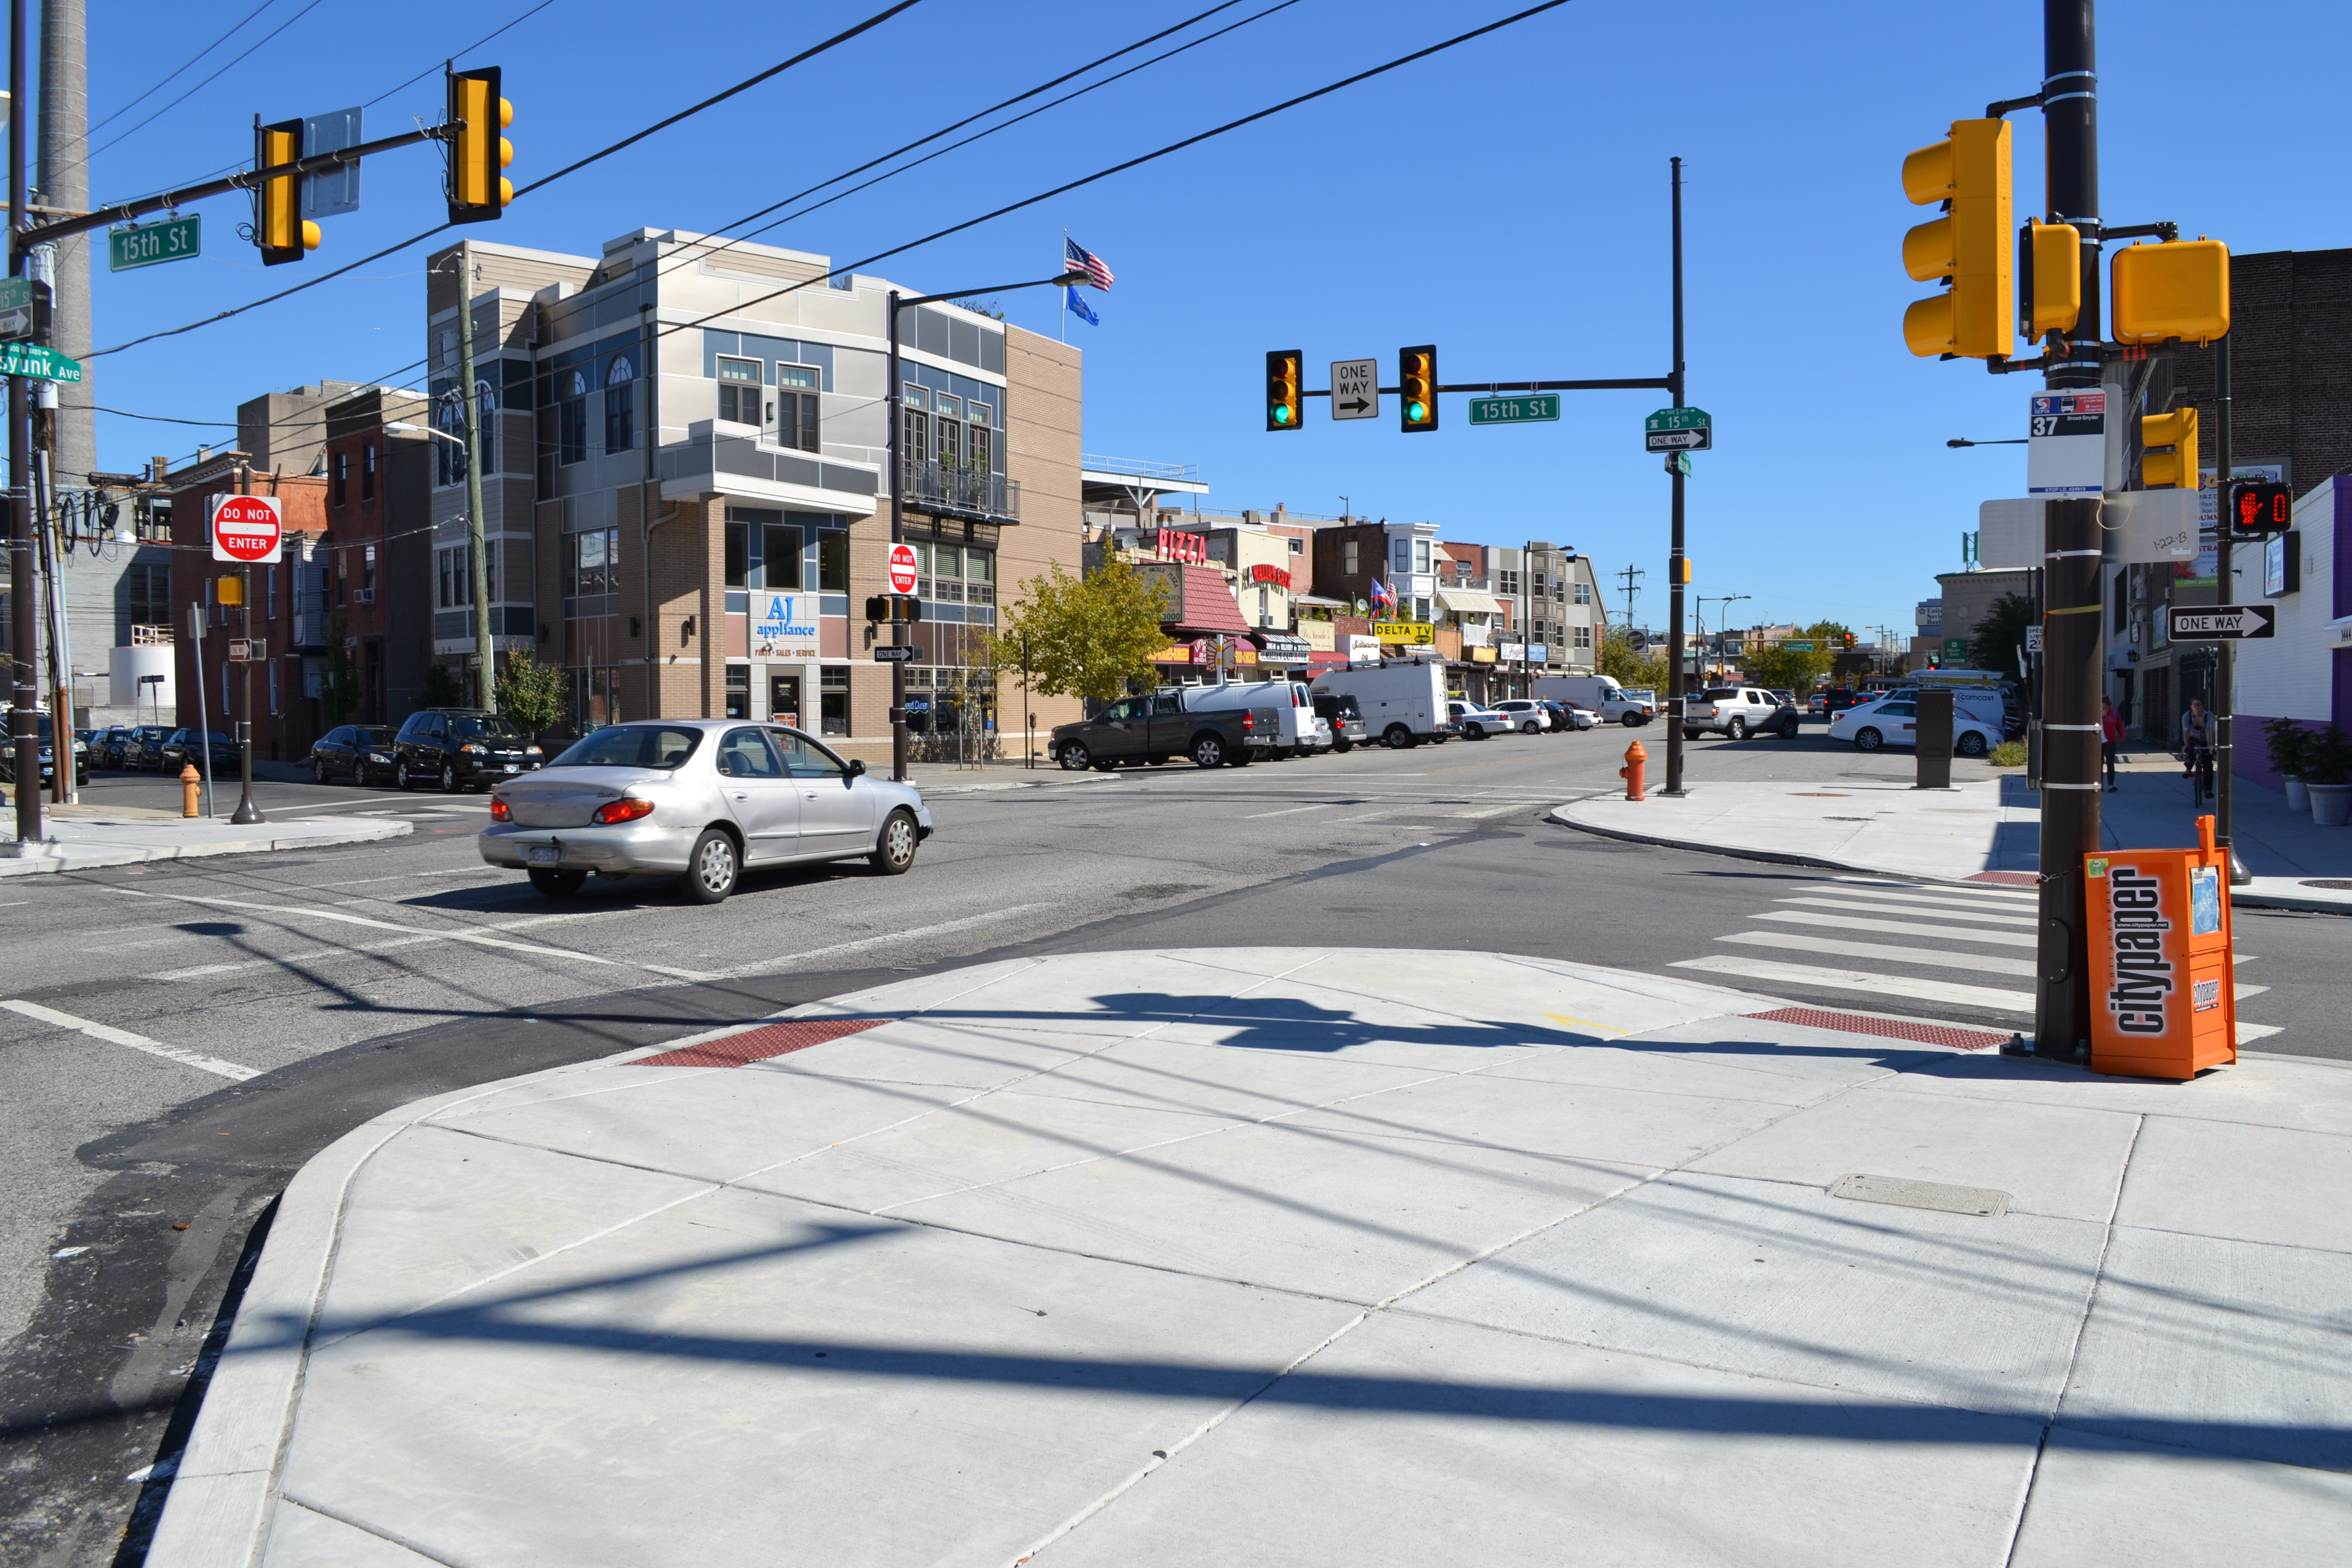 The Streets Department installed curb bump-outs, curb extensions into the roadway, to reduce pedestrian crossing time and improve signal timing